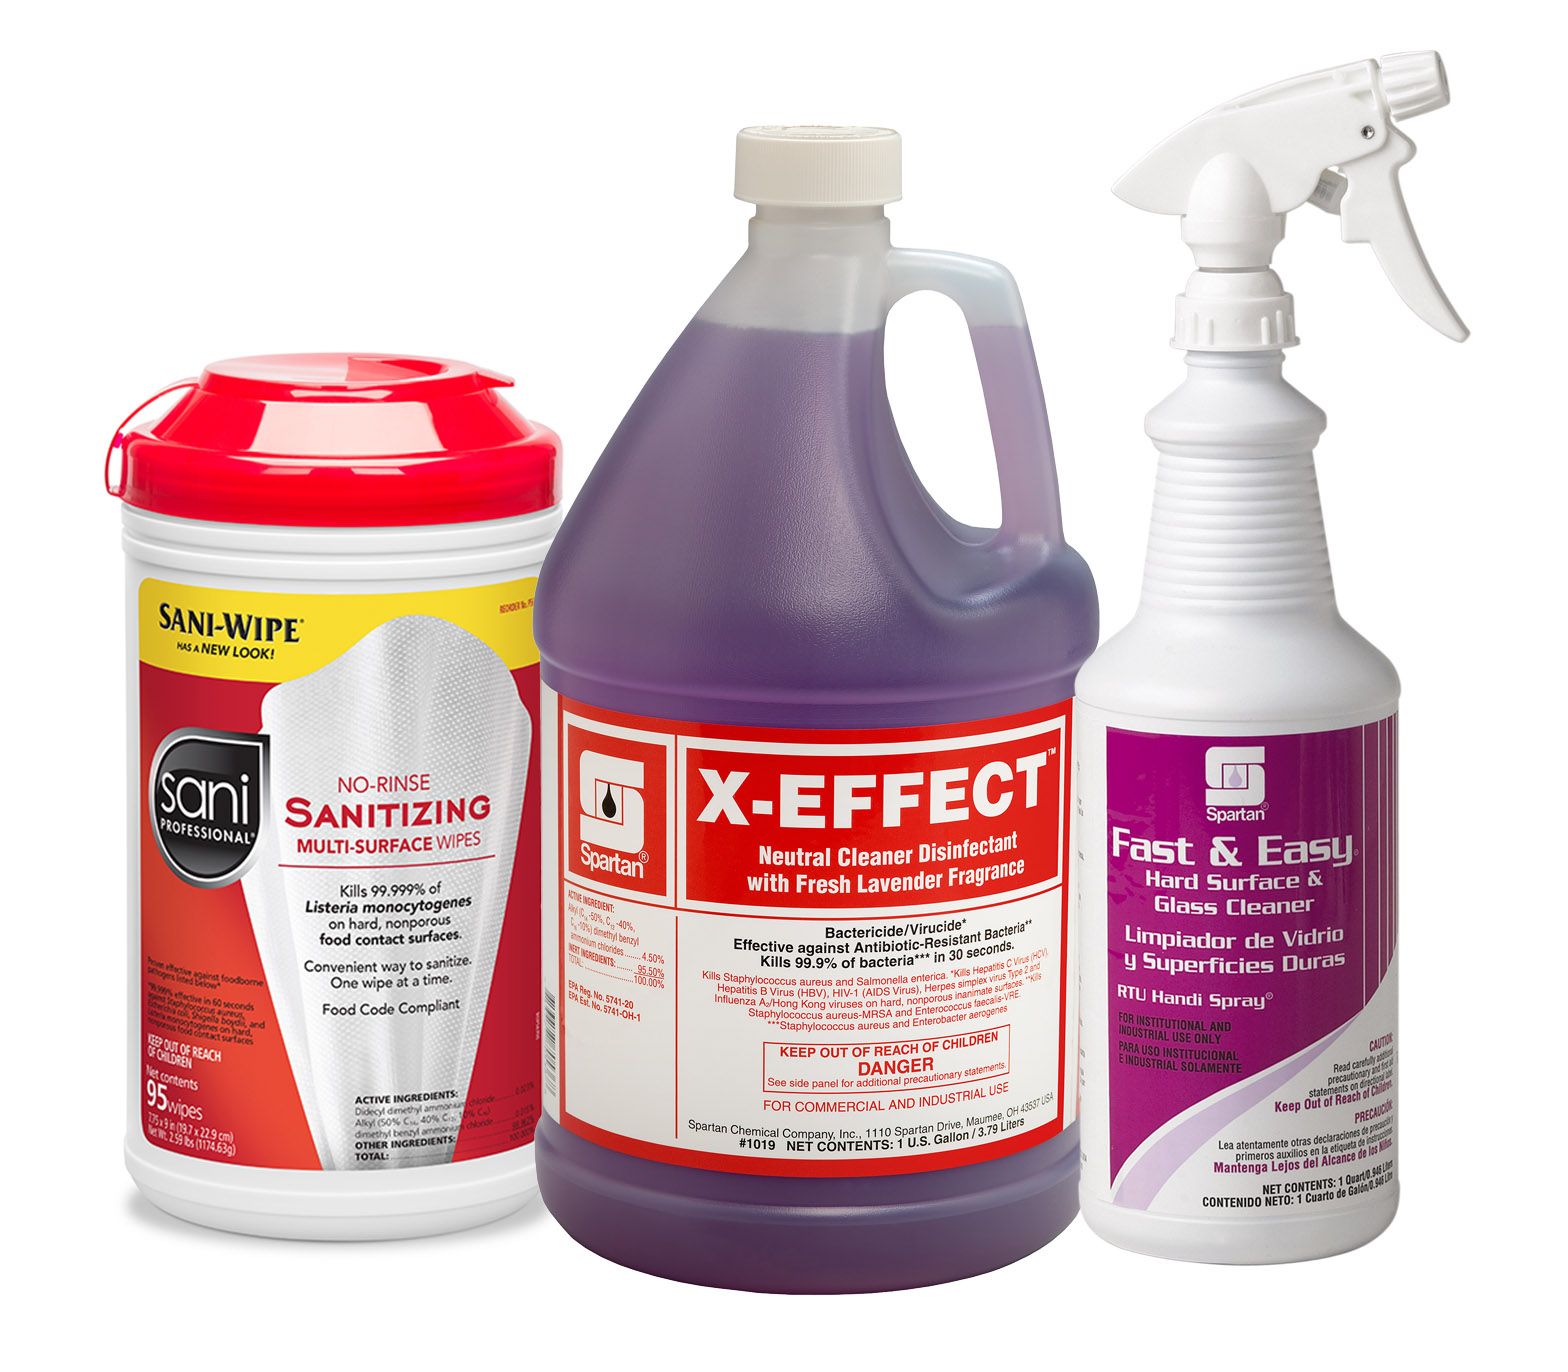 HDi Disinfectants and Sanitizers